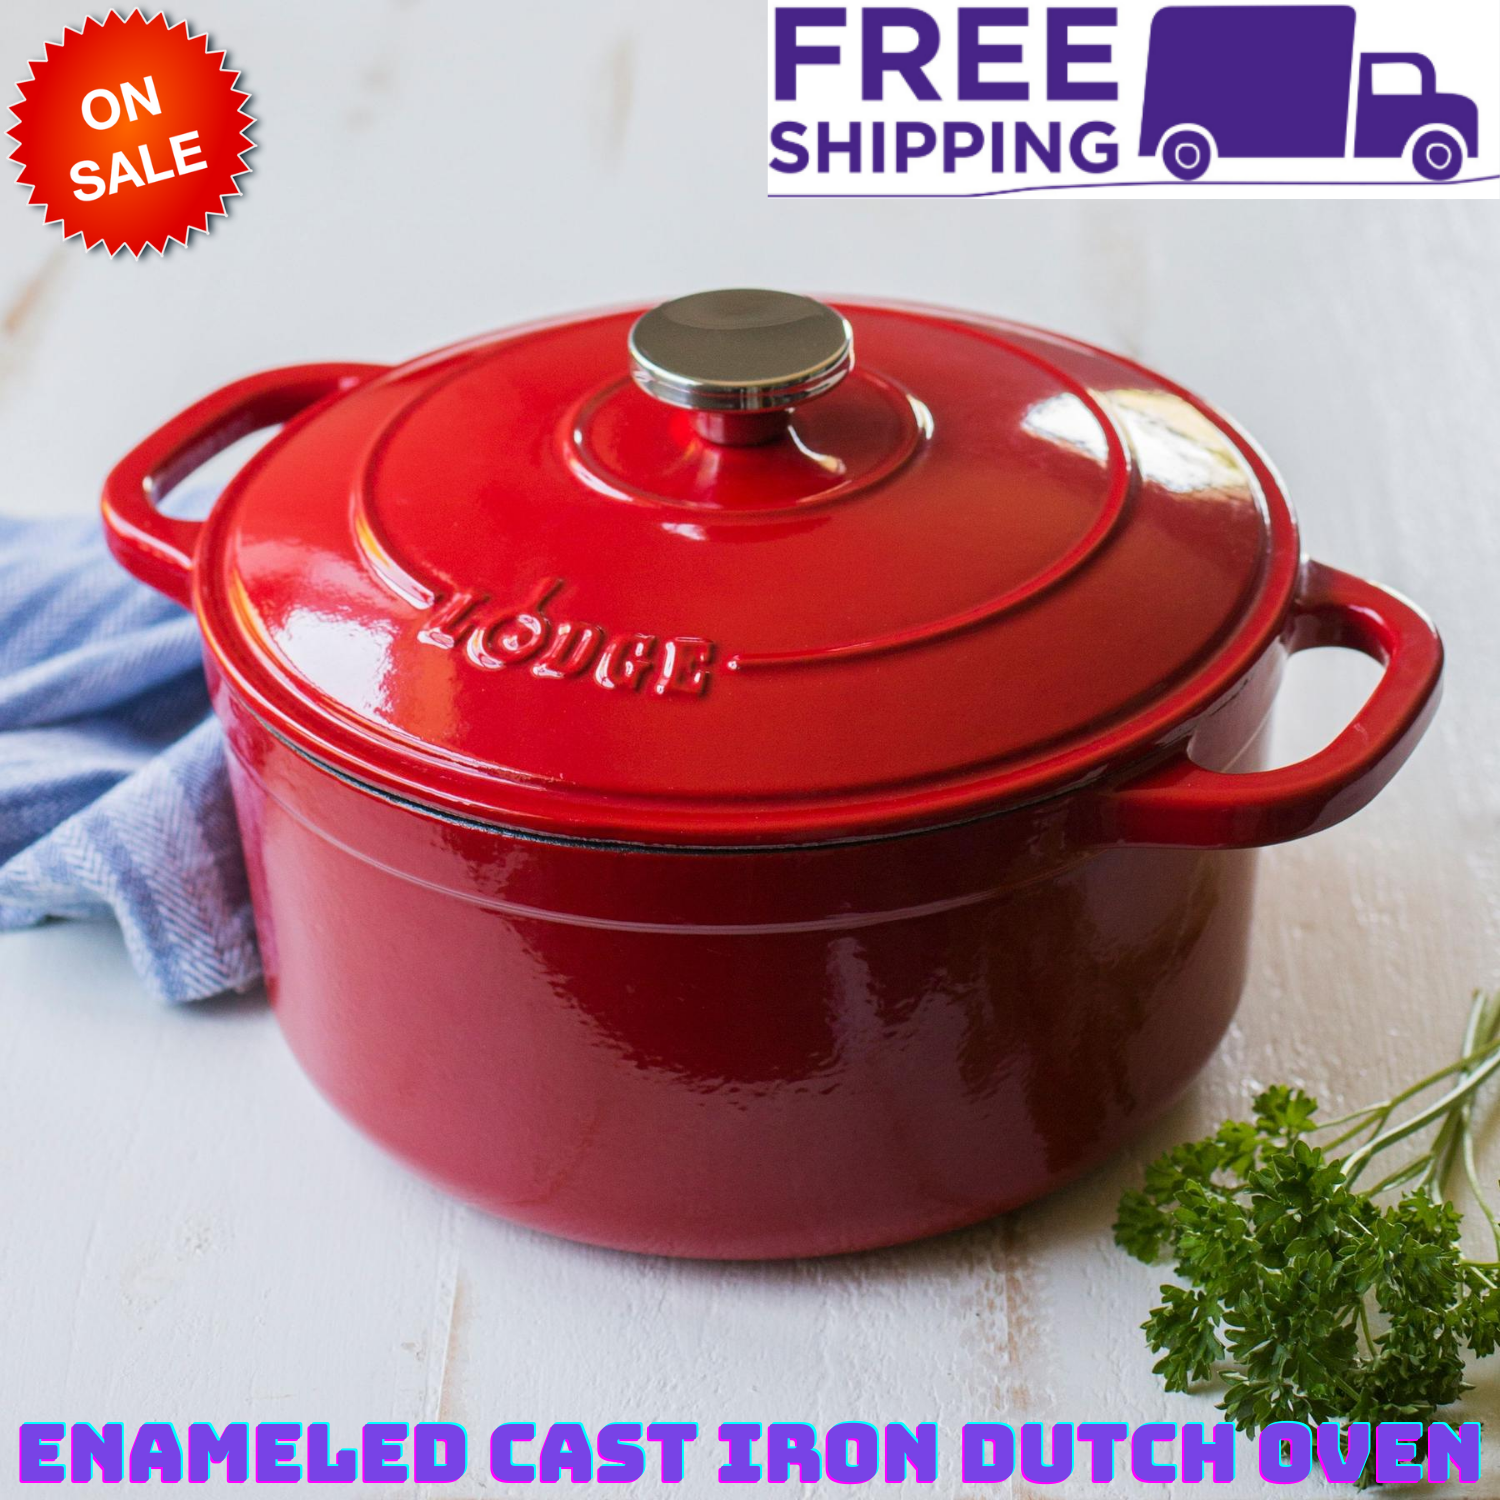 Lodge Enameled Kitchen Cooking Cookware Cast Iron 5.5 Quart